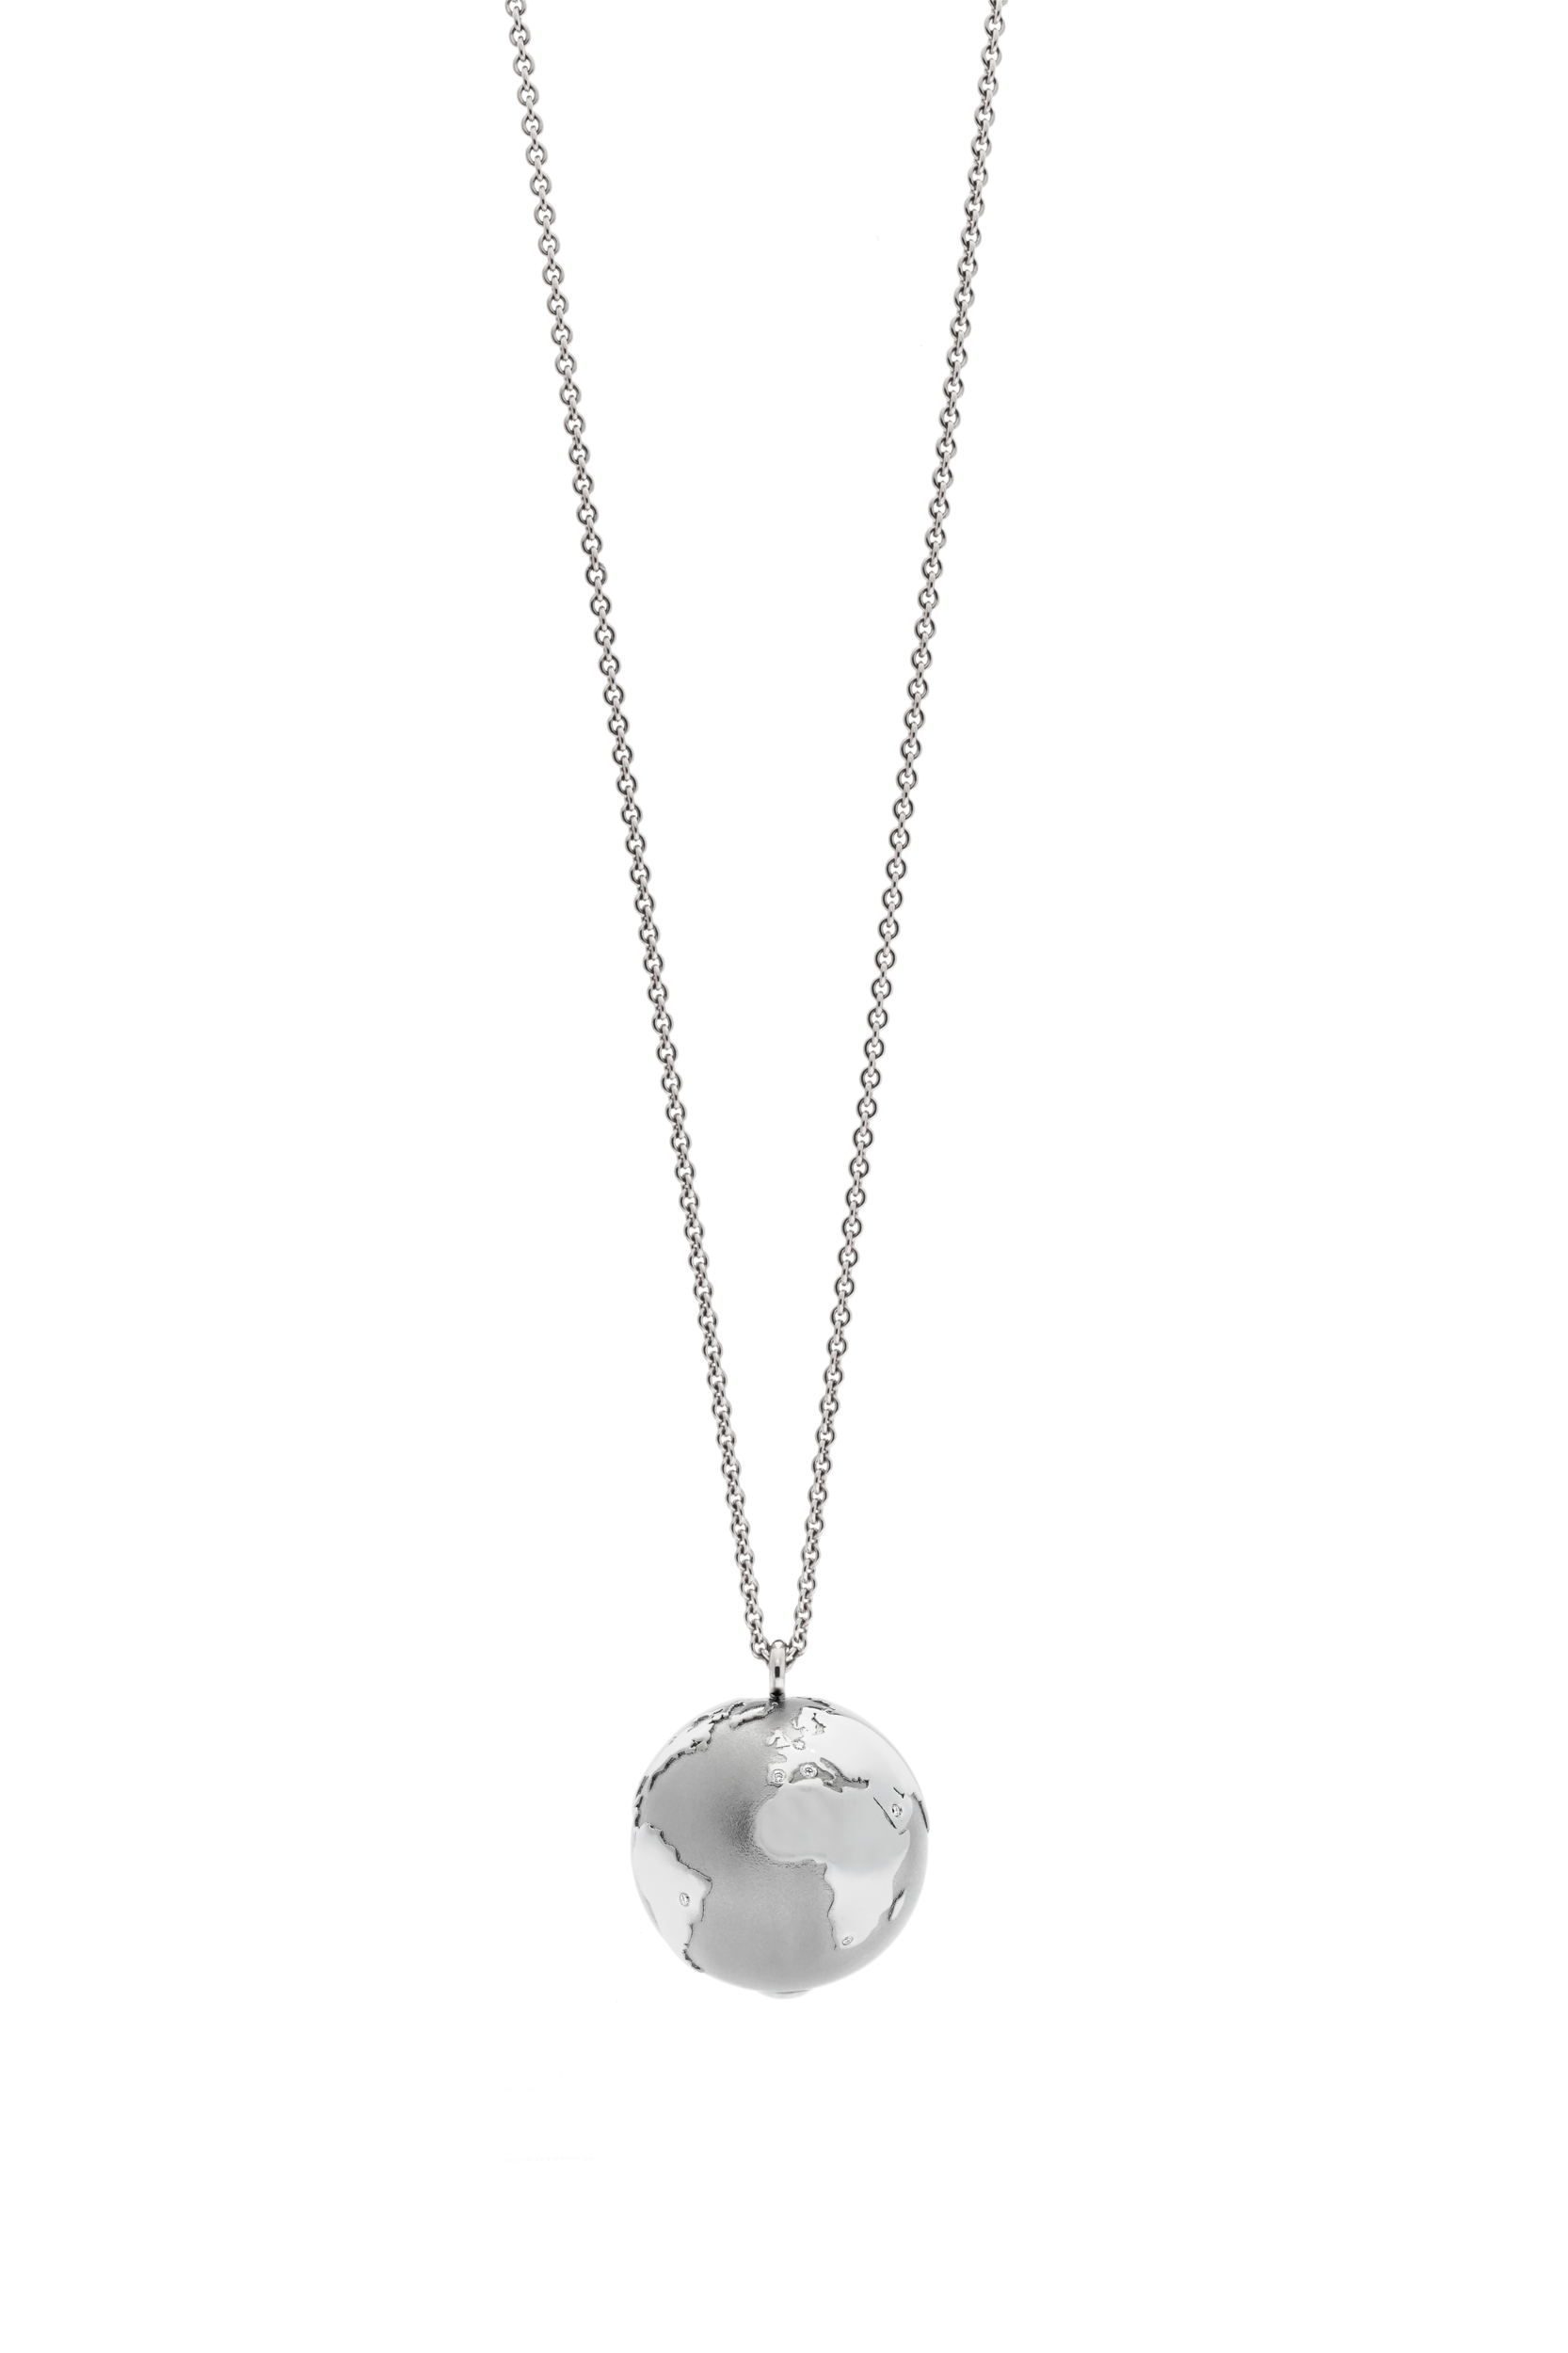 Collier MY WORLD 23 mm platine chaine 90 cm